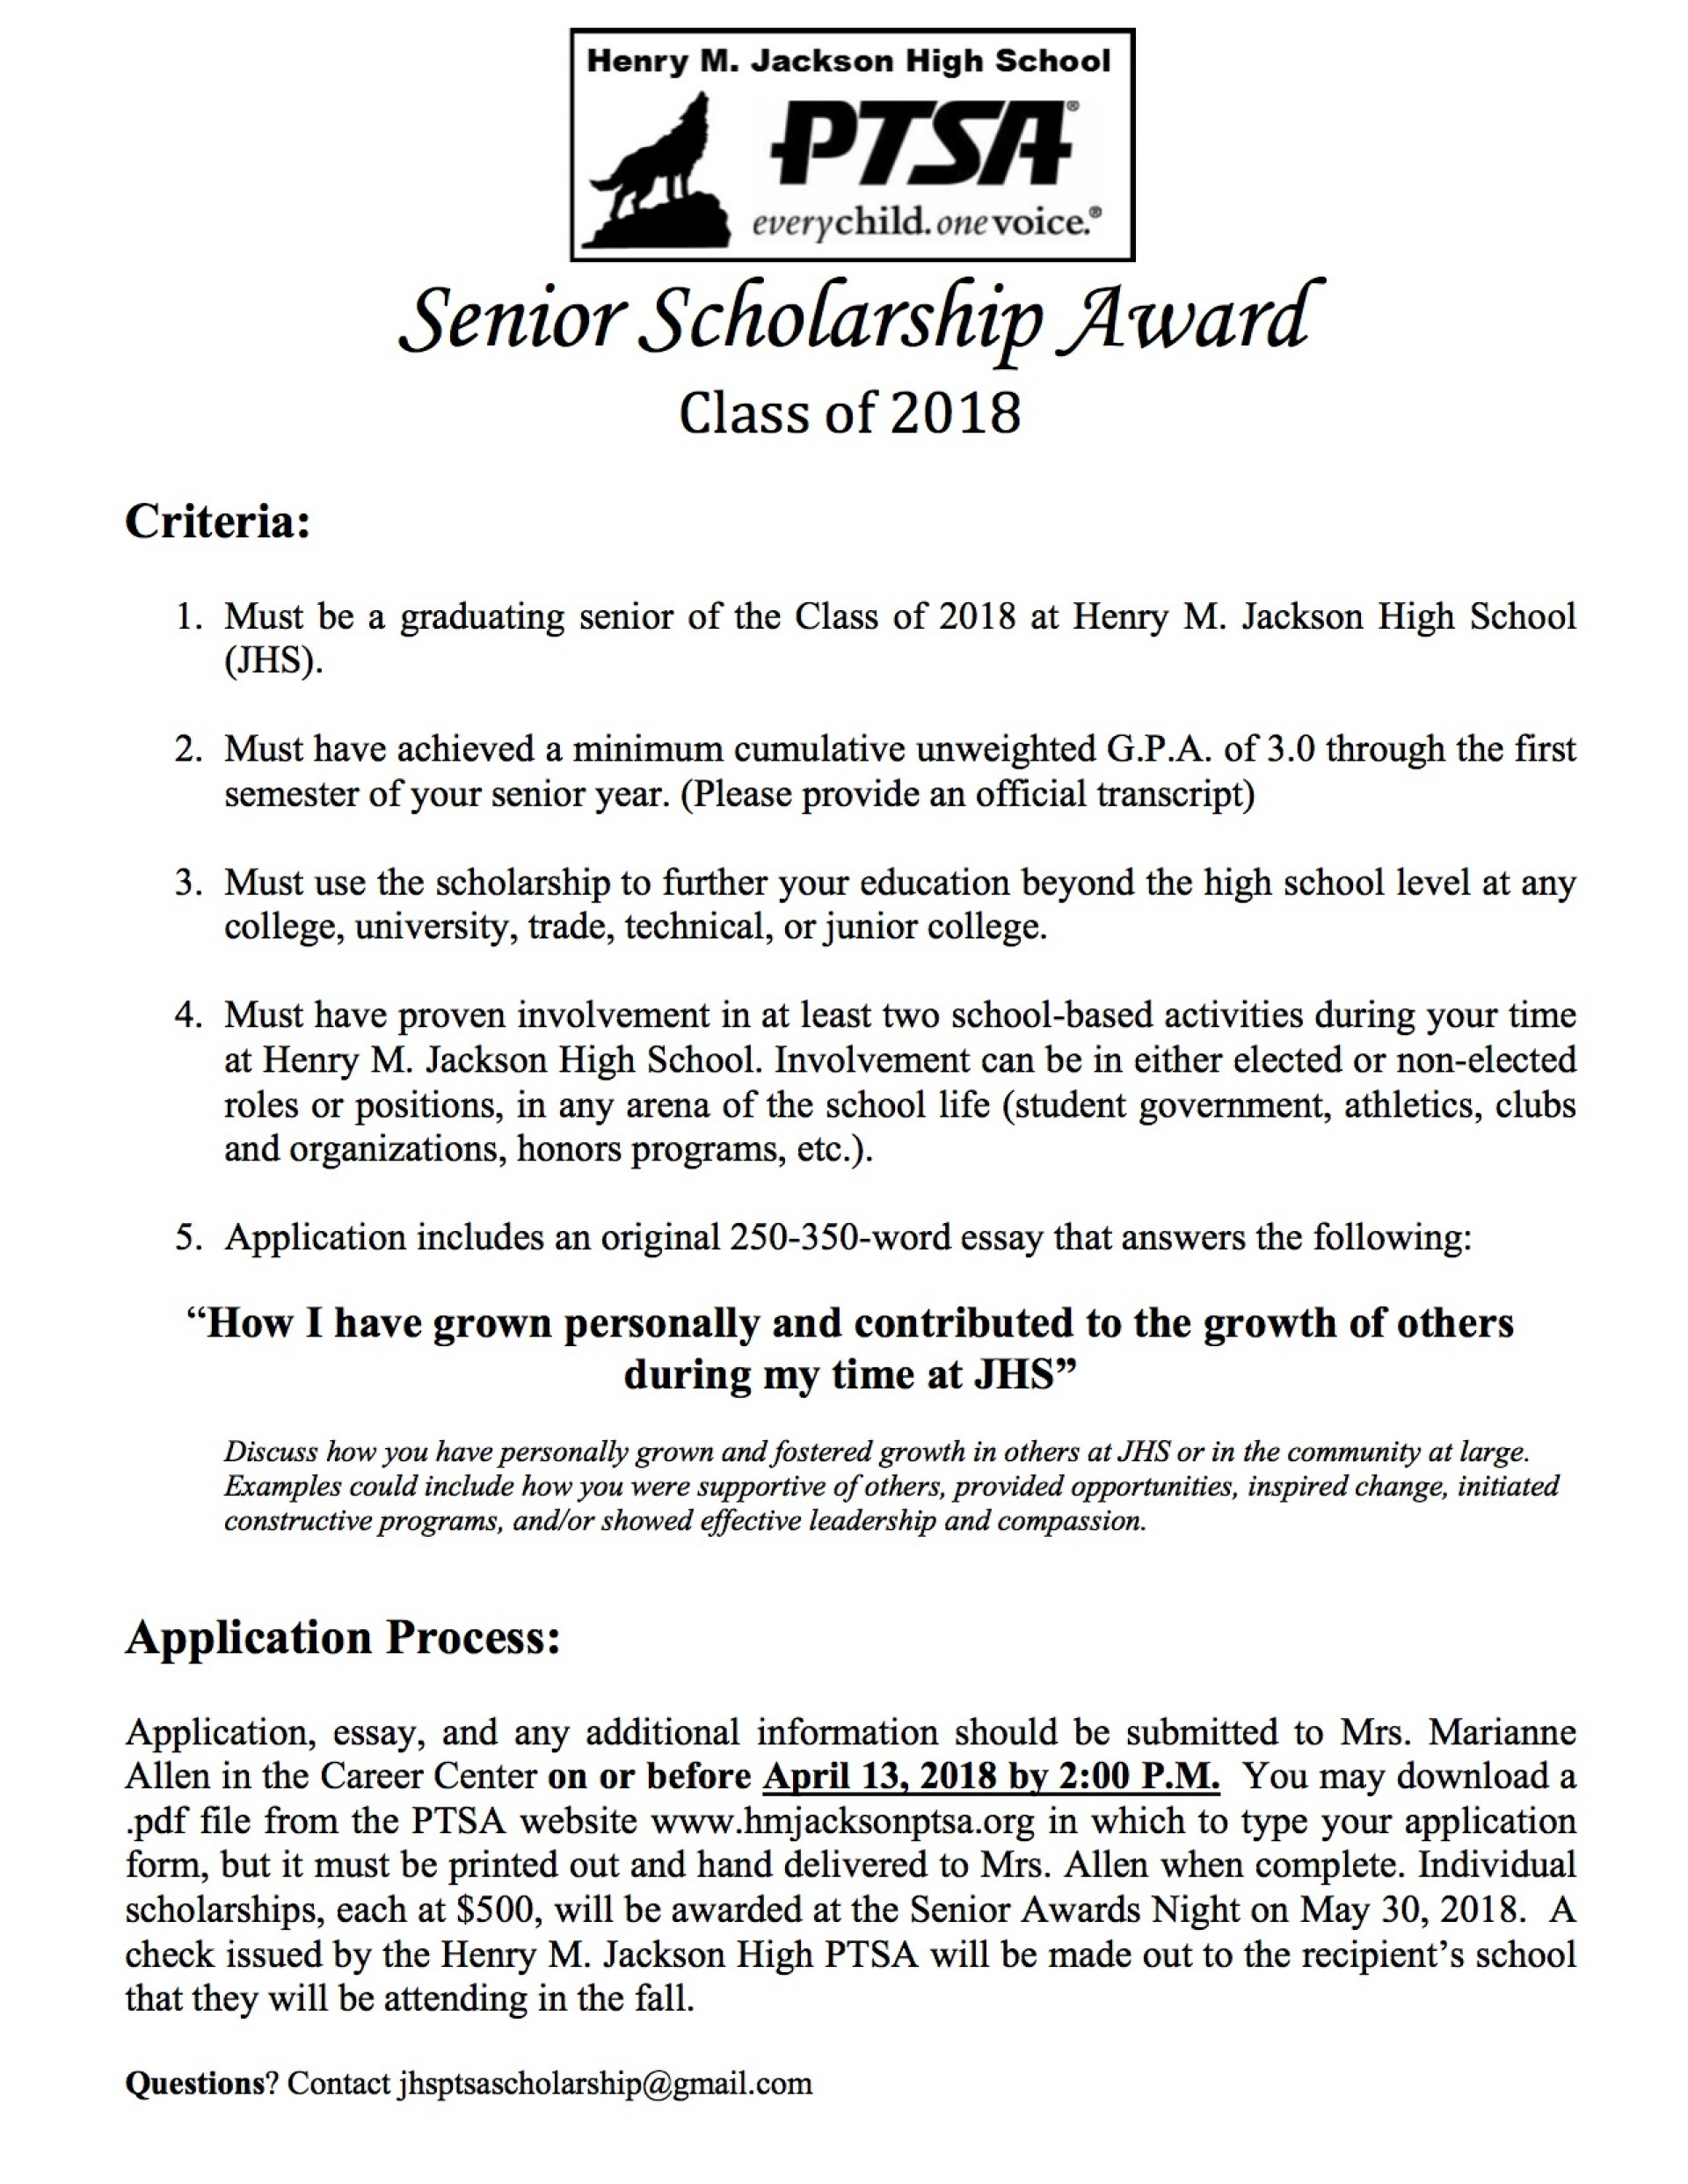 004 No Essay Scholarships For College Students Senior Henry M Jackson Ptsa Scholarship Application 201 Awful 2019 1920